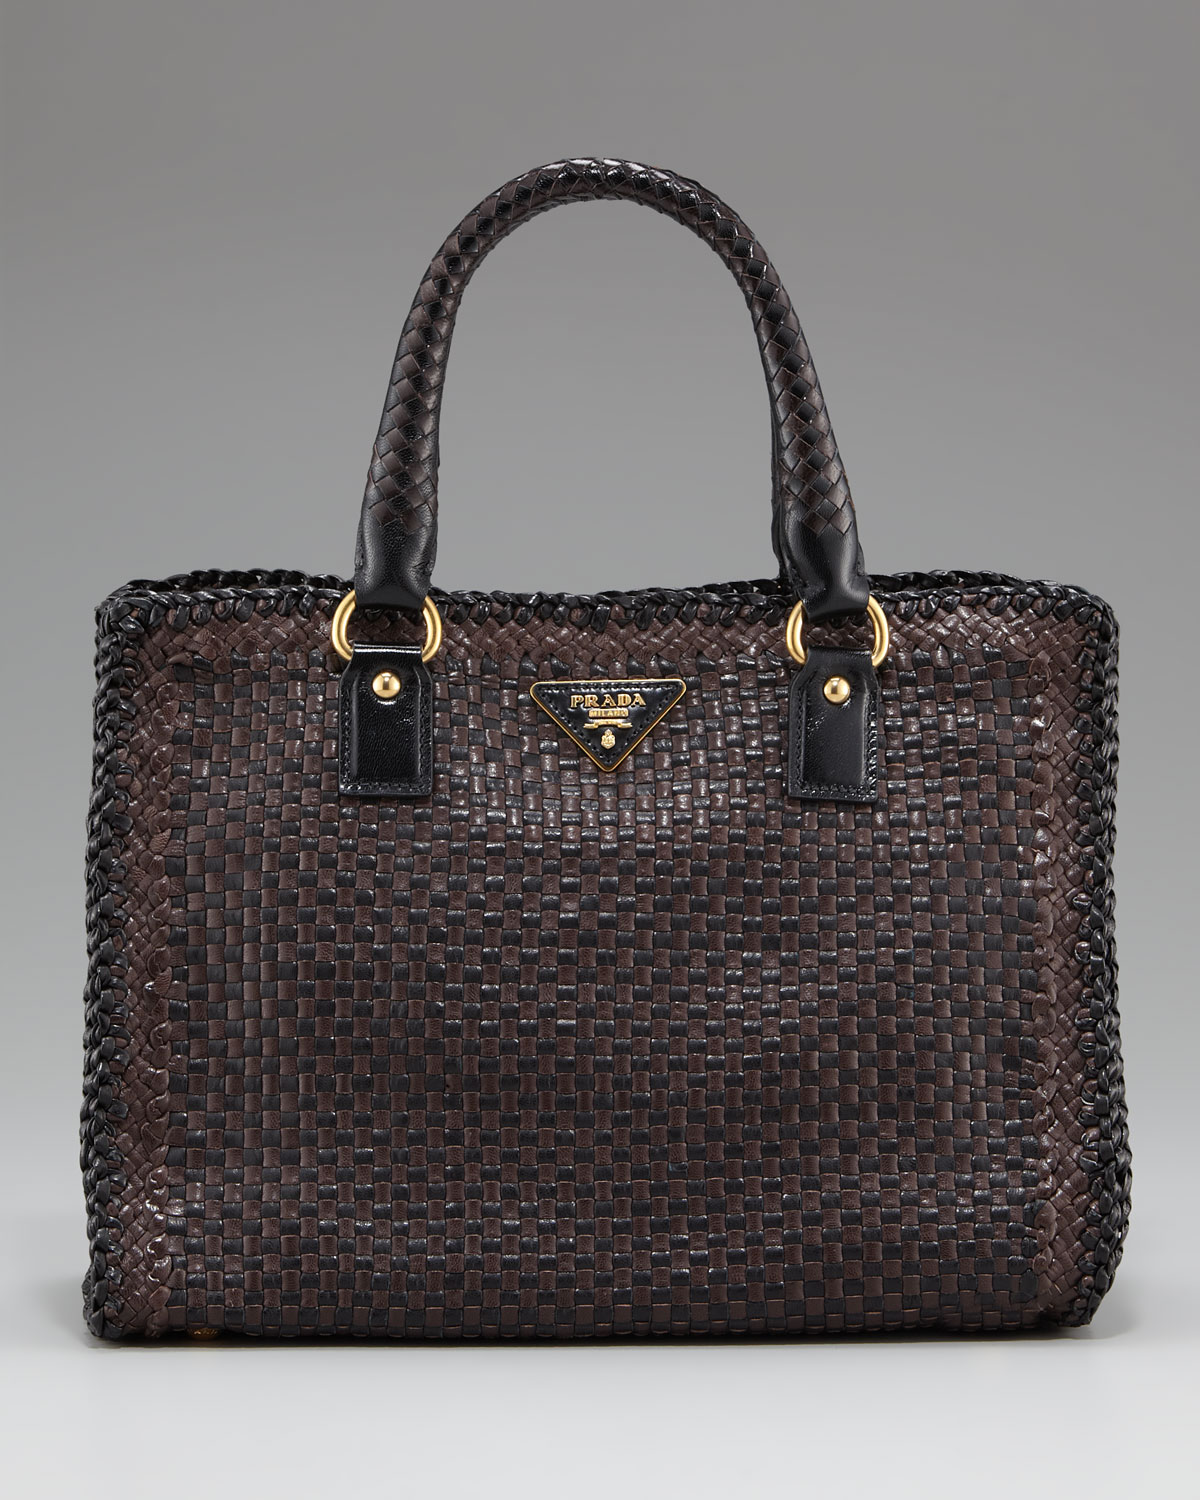 Prada Madras Woven Double-handle Tote in Brown | Lyst